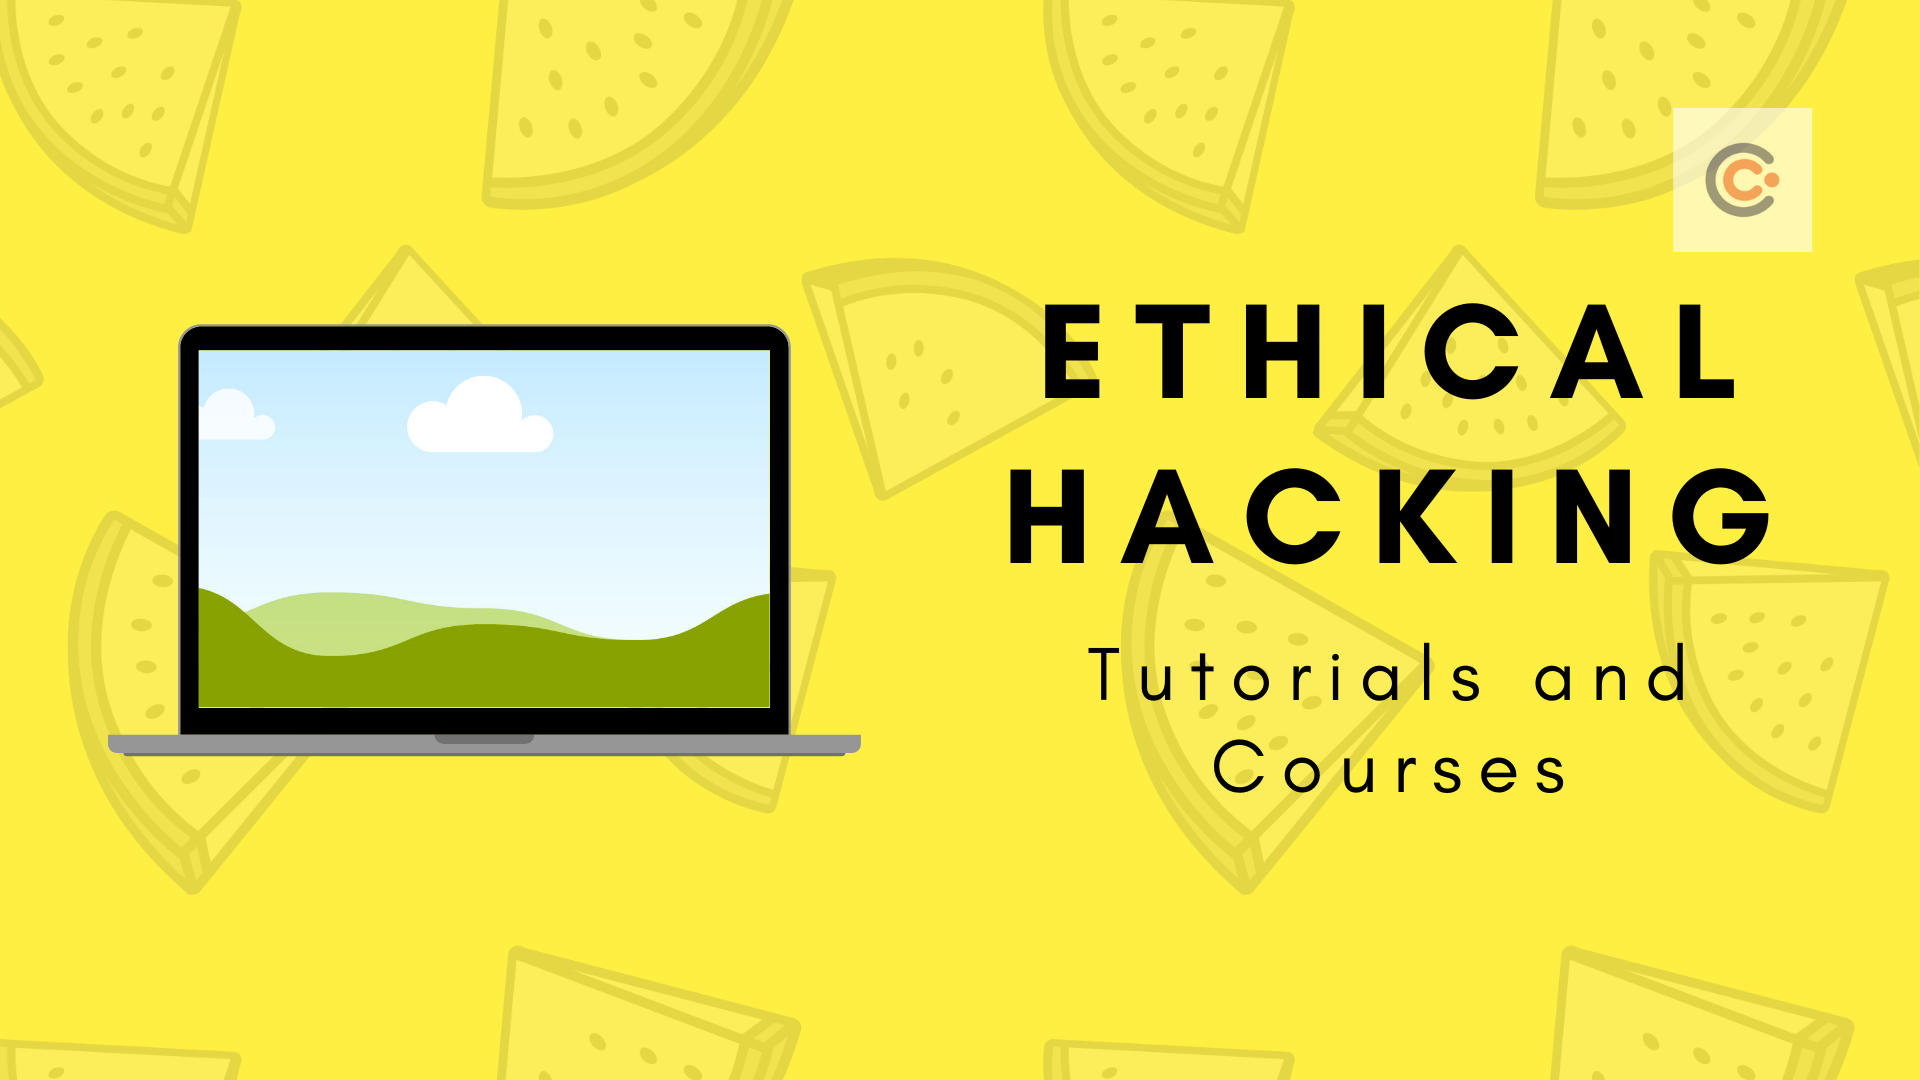 12 Best Ethical Hacking Tutorials & Courses - Learn Ethical Hacking Online